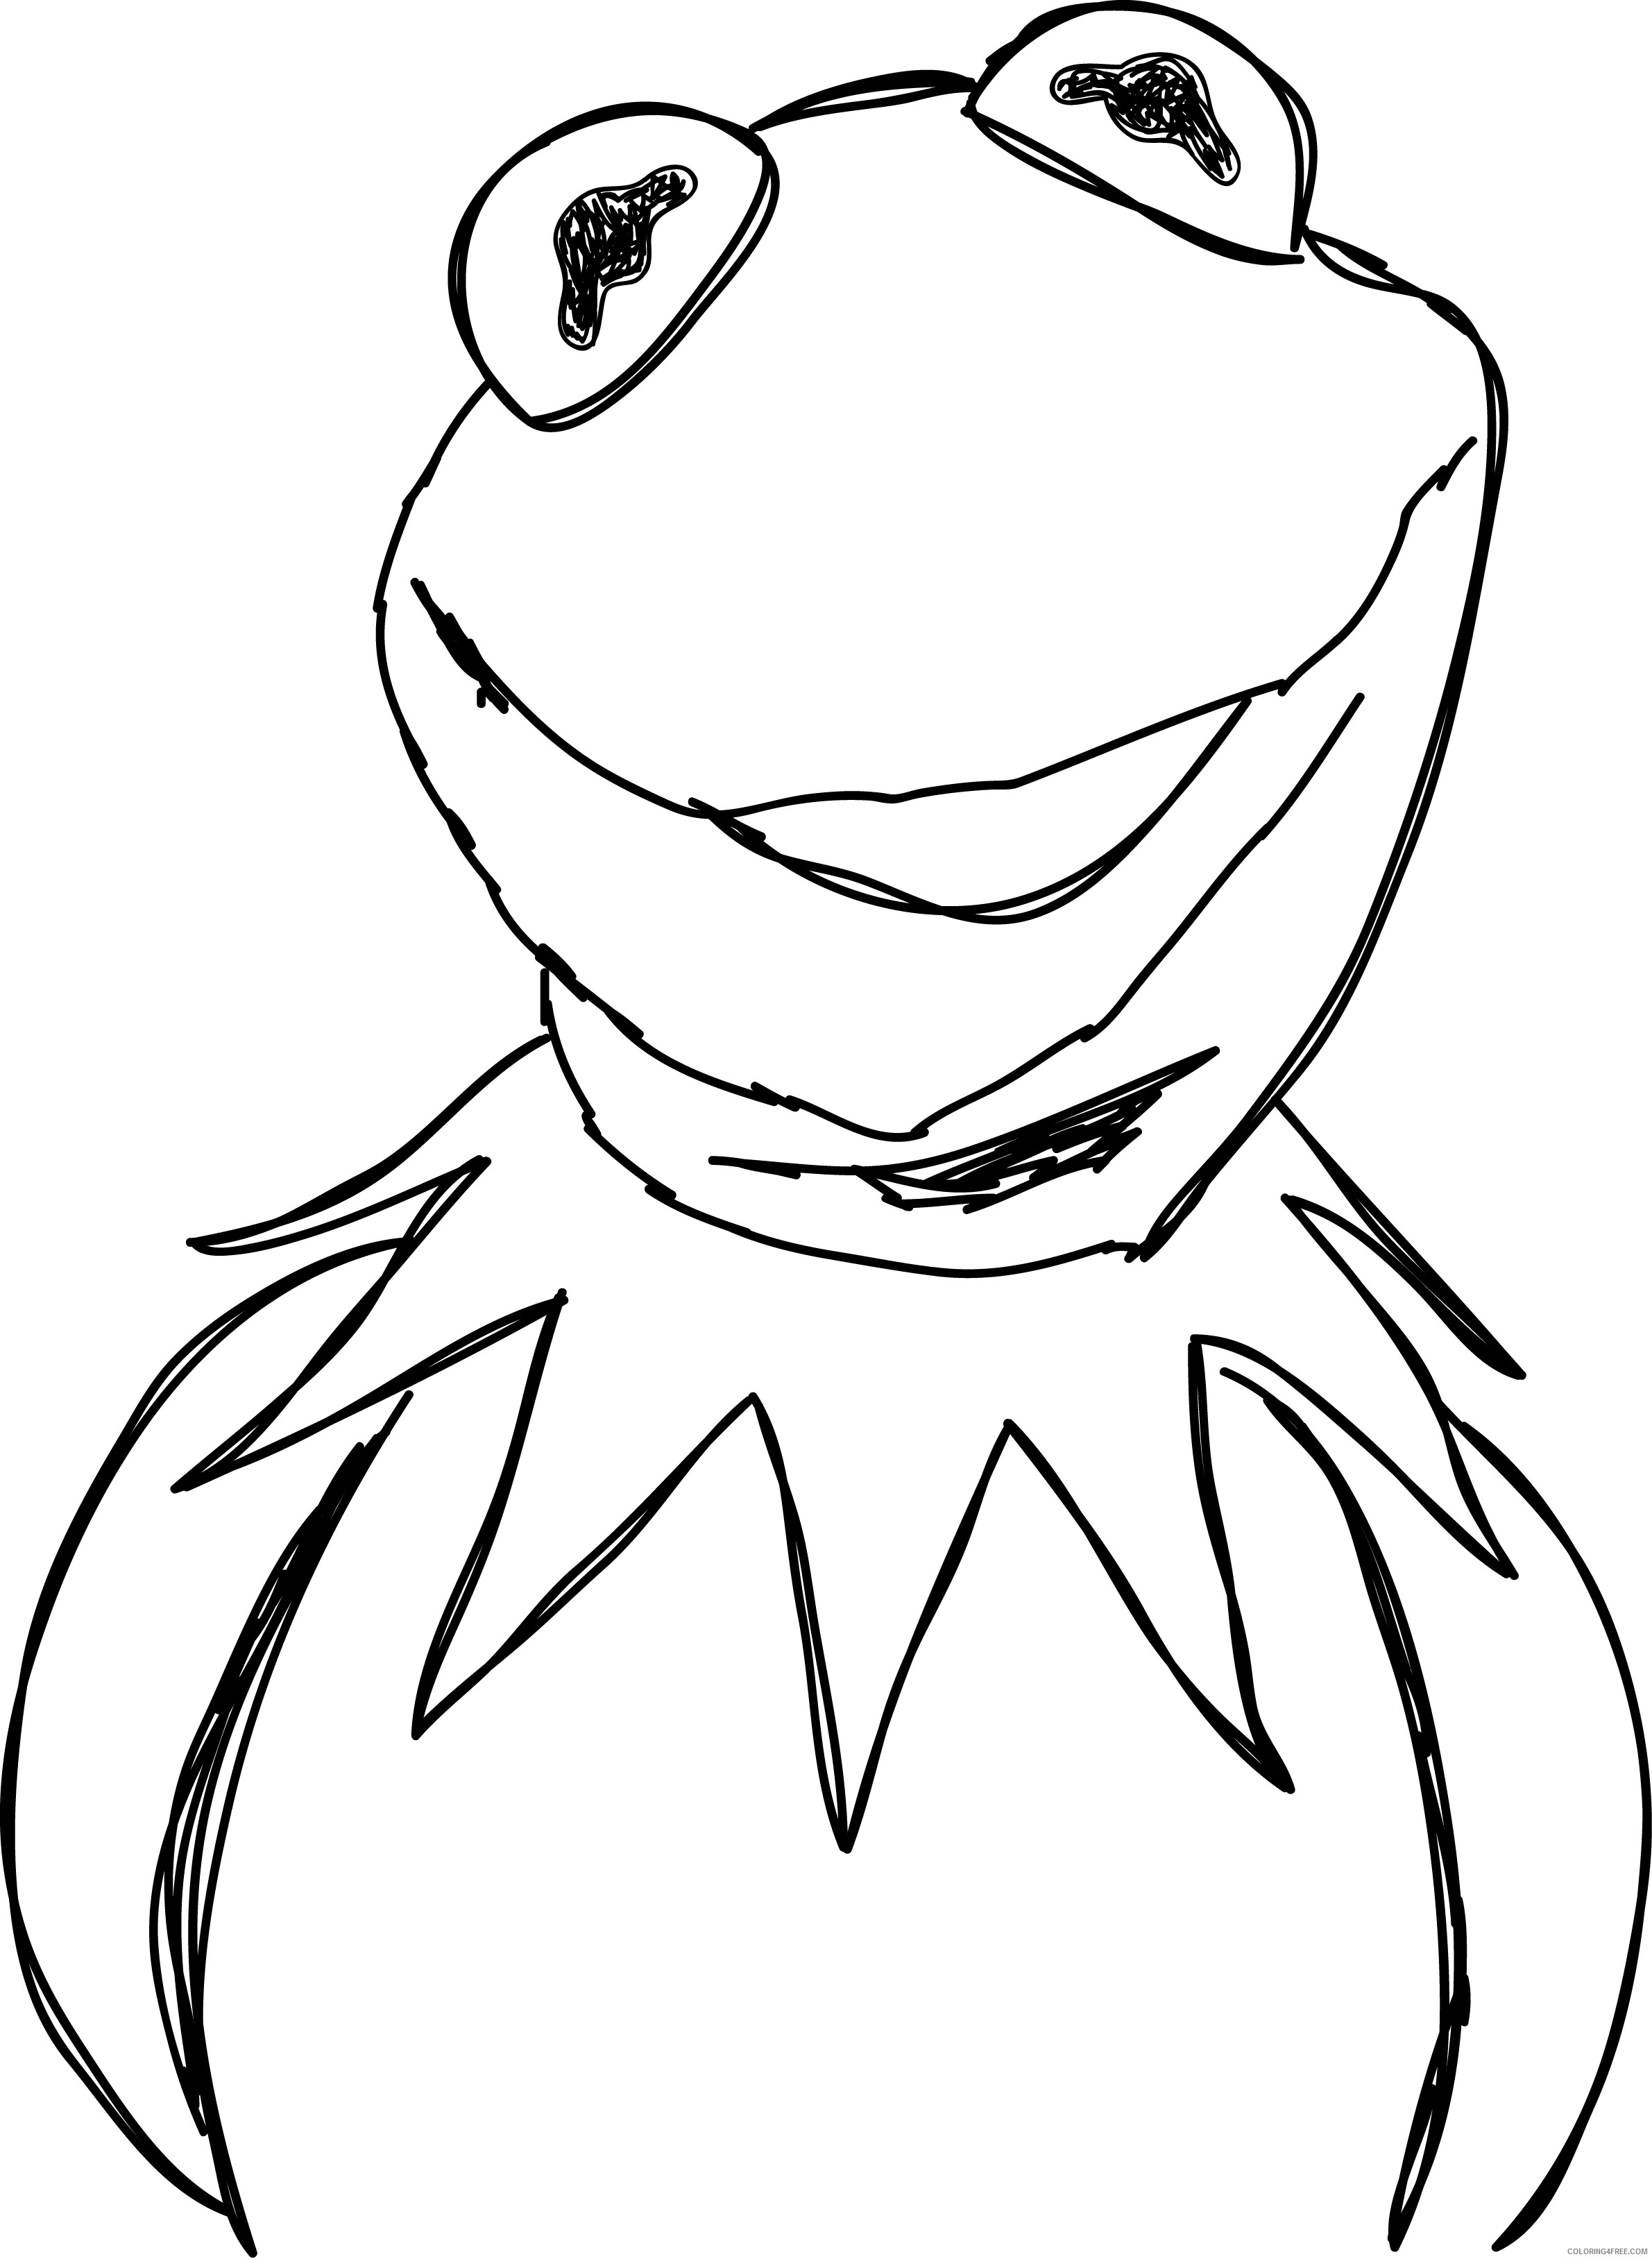 Kermit the Frog Coloring Pages kermit the frog art clipart Printable Coloring4free